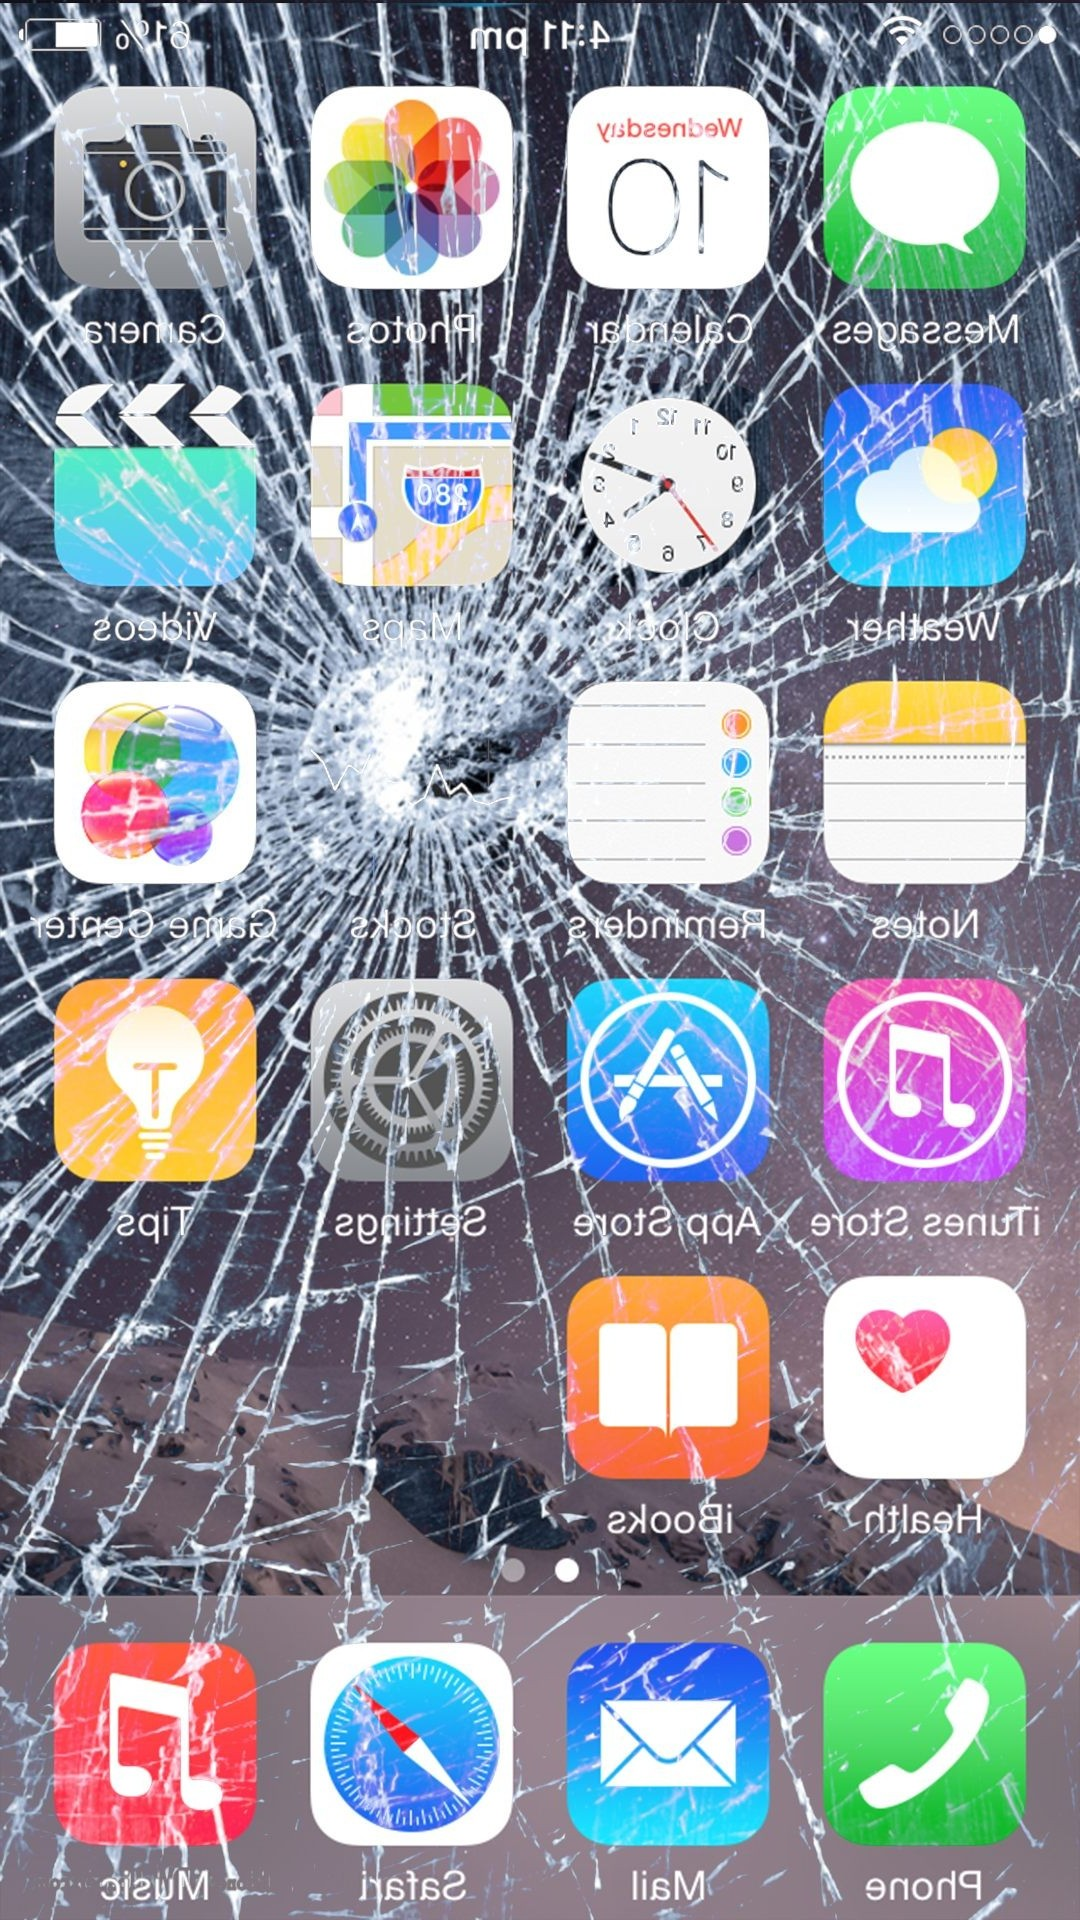 Cracked Screen Wallpaper Prank Broken Glass Iphone Wallpaper Prank 1080x1920 Download Hd Wallpaper Wallpapertip